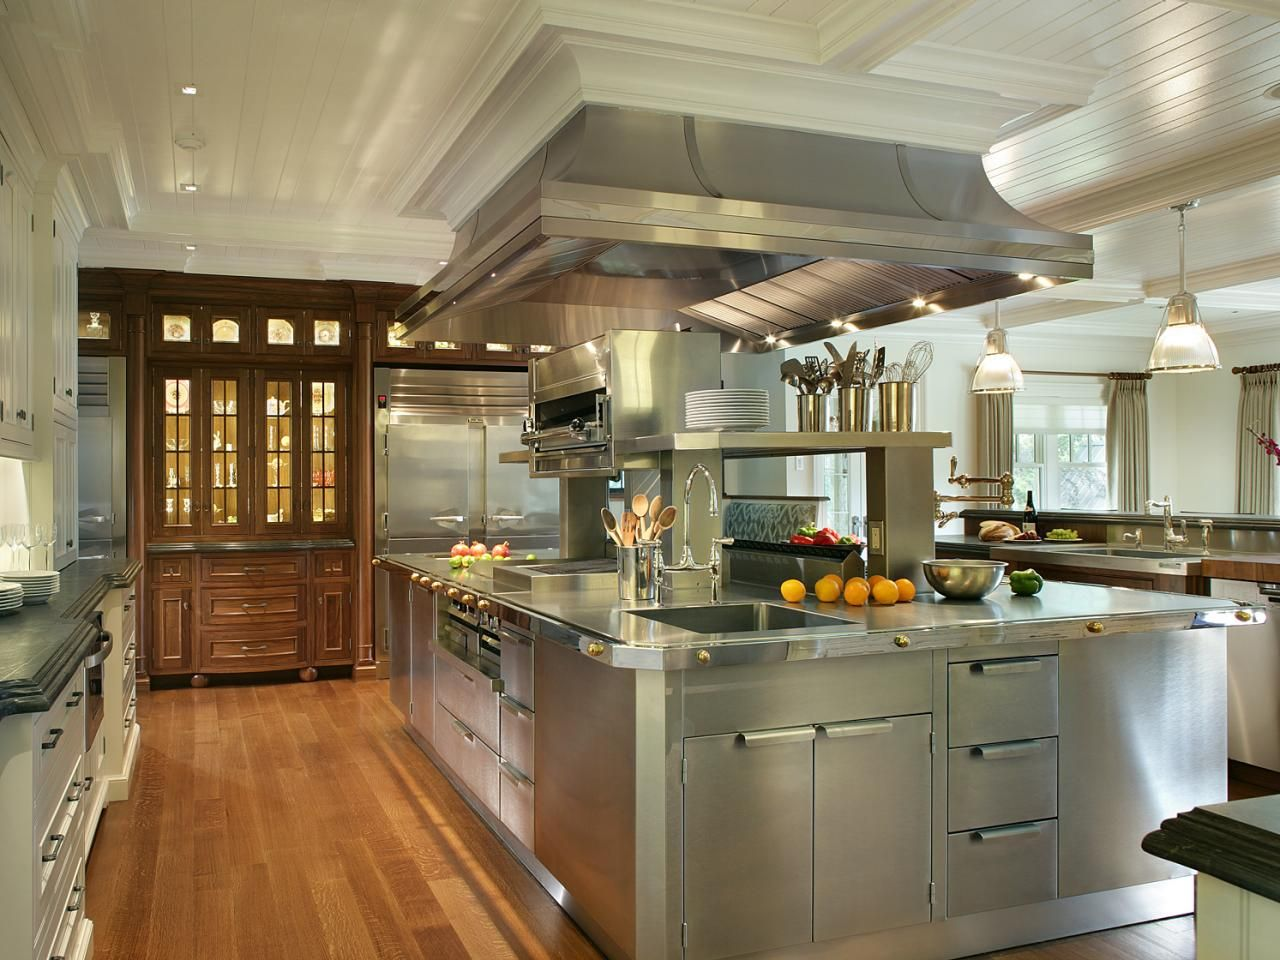 Good Get Inspiration To Makeover A Kitchen Into A Professional Chef Kitchen  Design At HGTV.com.